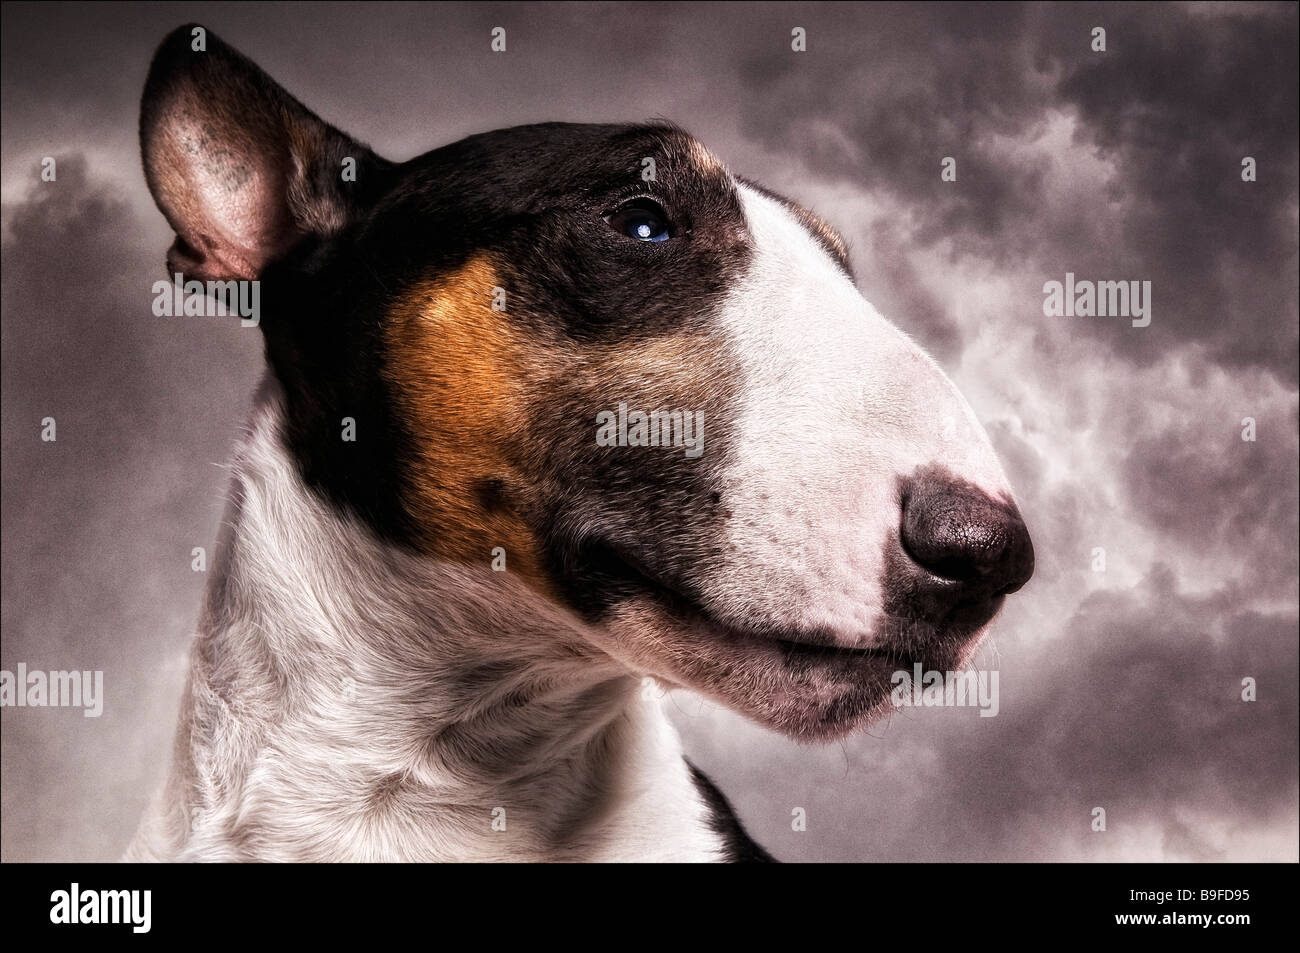 Close-up of Bull Terrier's face - Stock Image